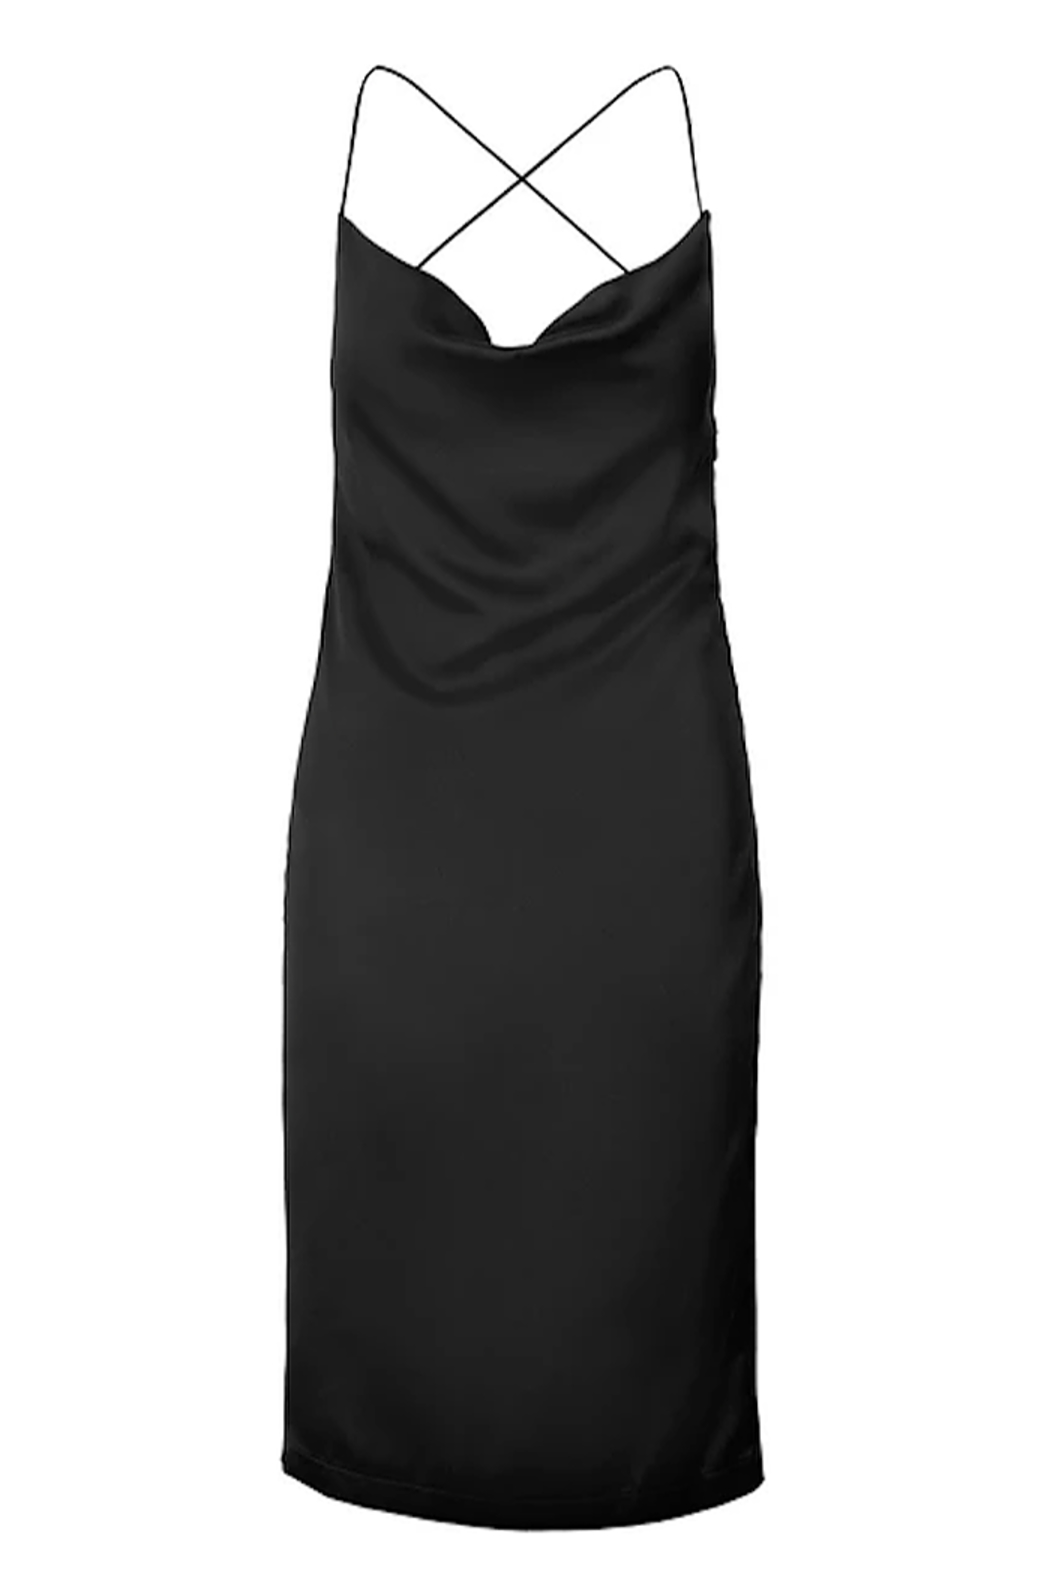 Bishop + Young Siren Slip Dress - Main Image